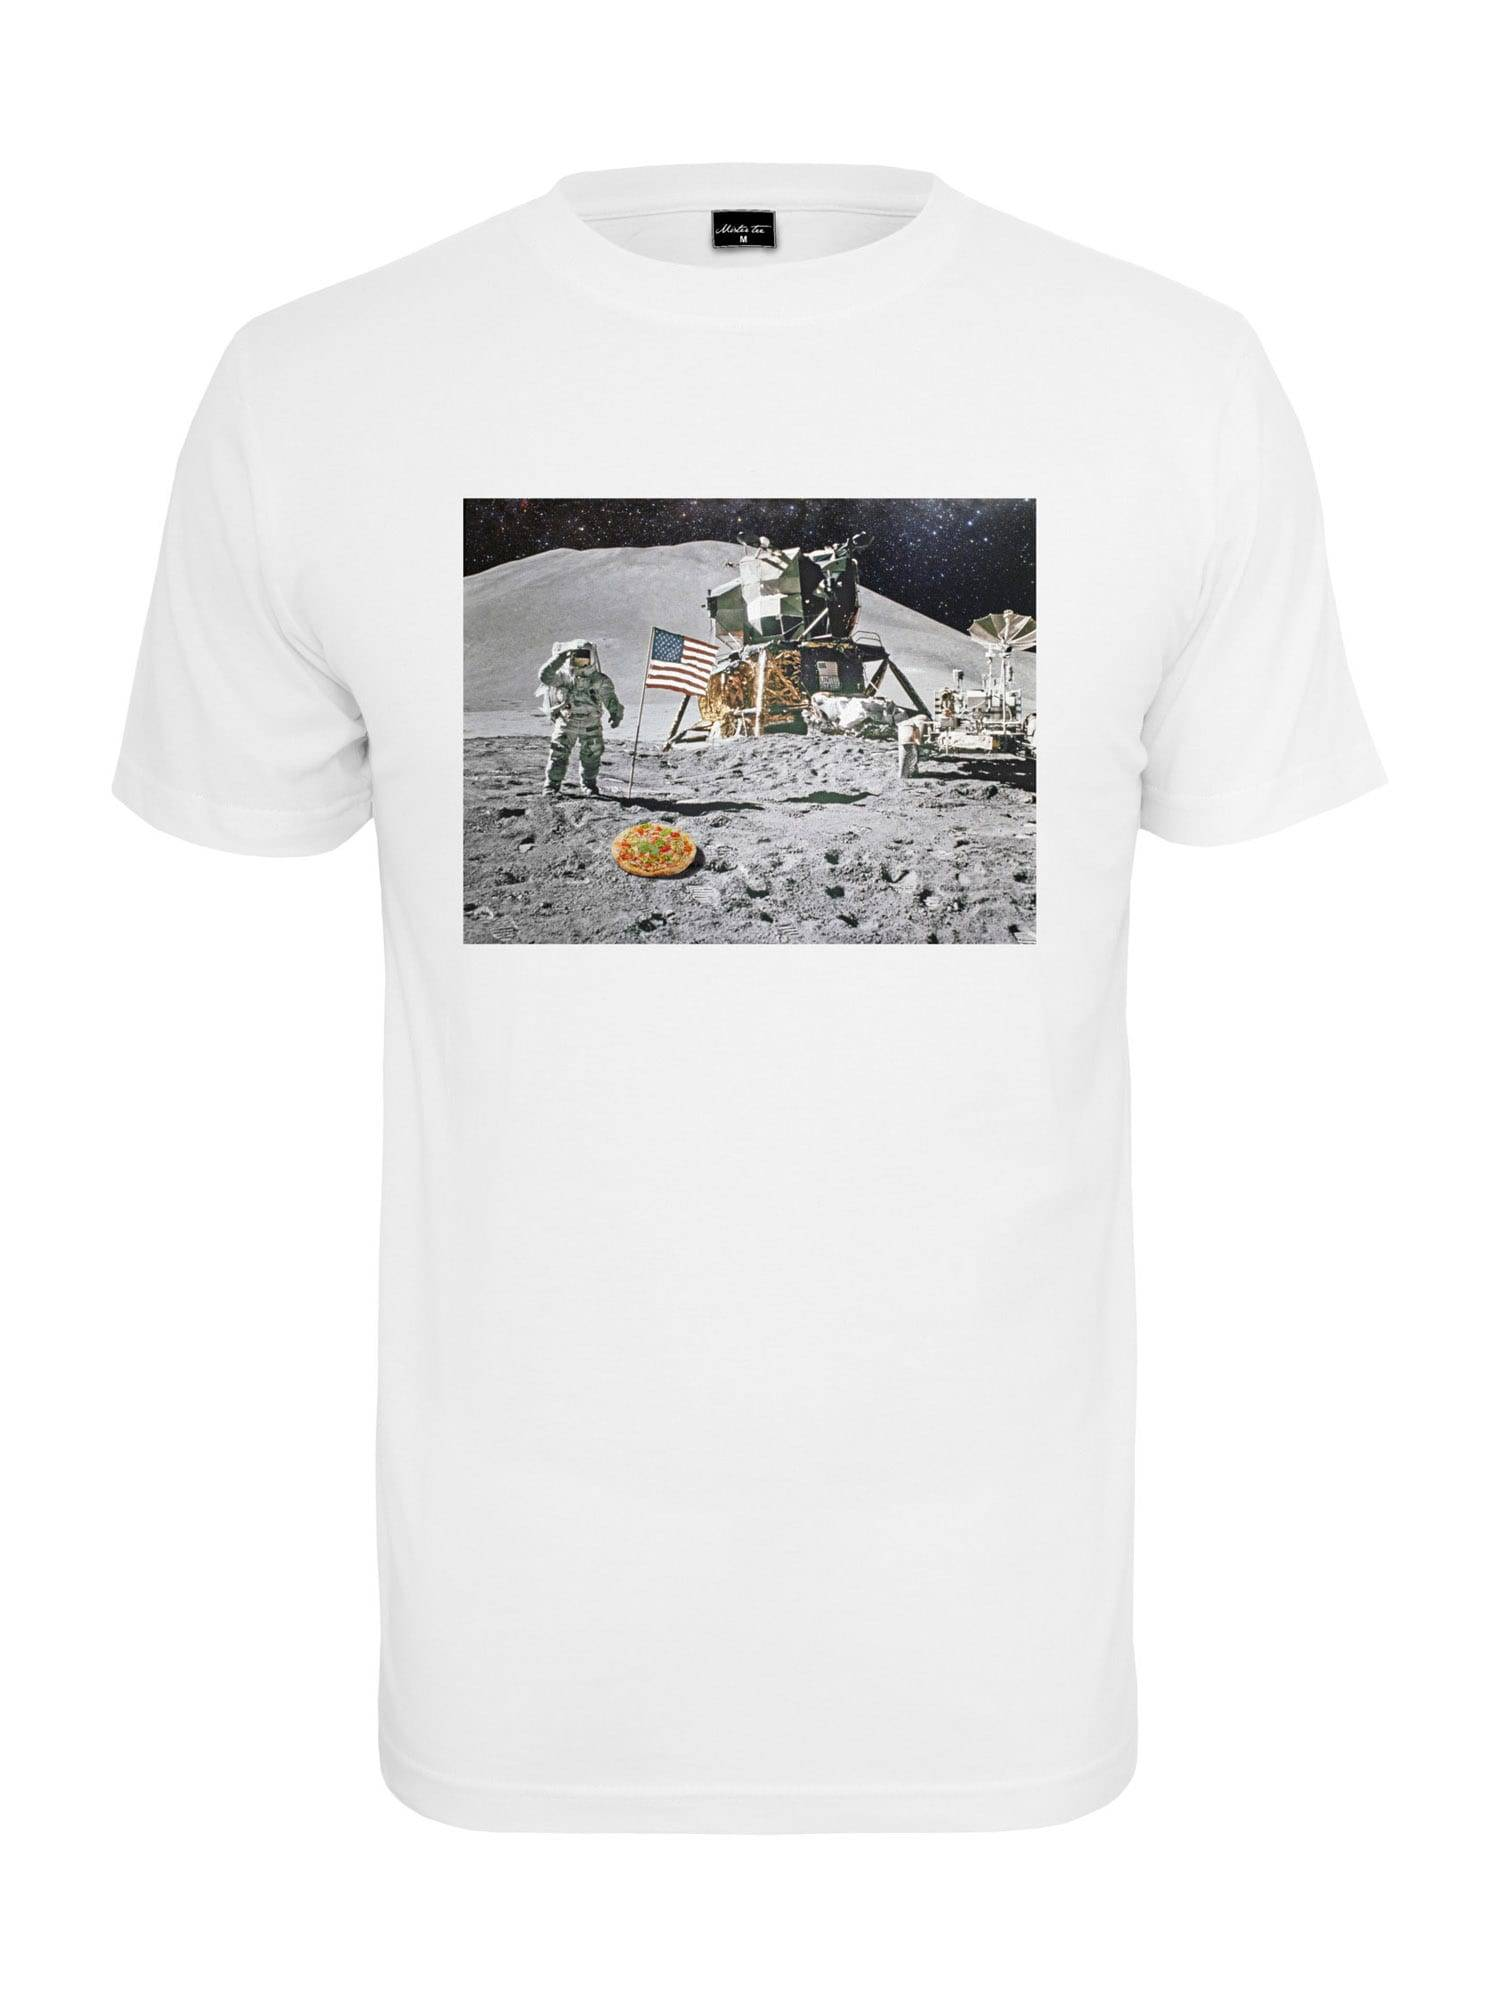 Tee T-Shirt 'Pizza Moon'  - Blanc - Taille: S - male